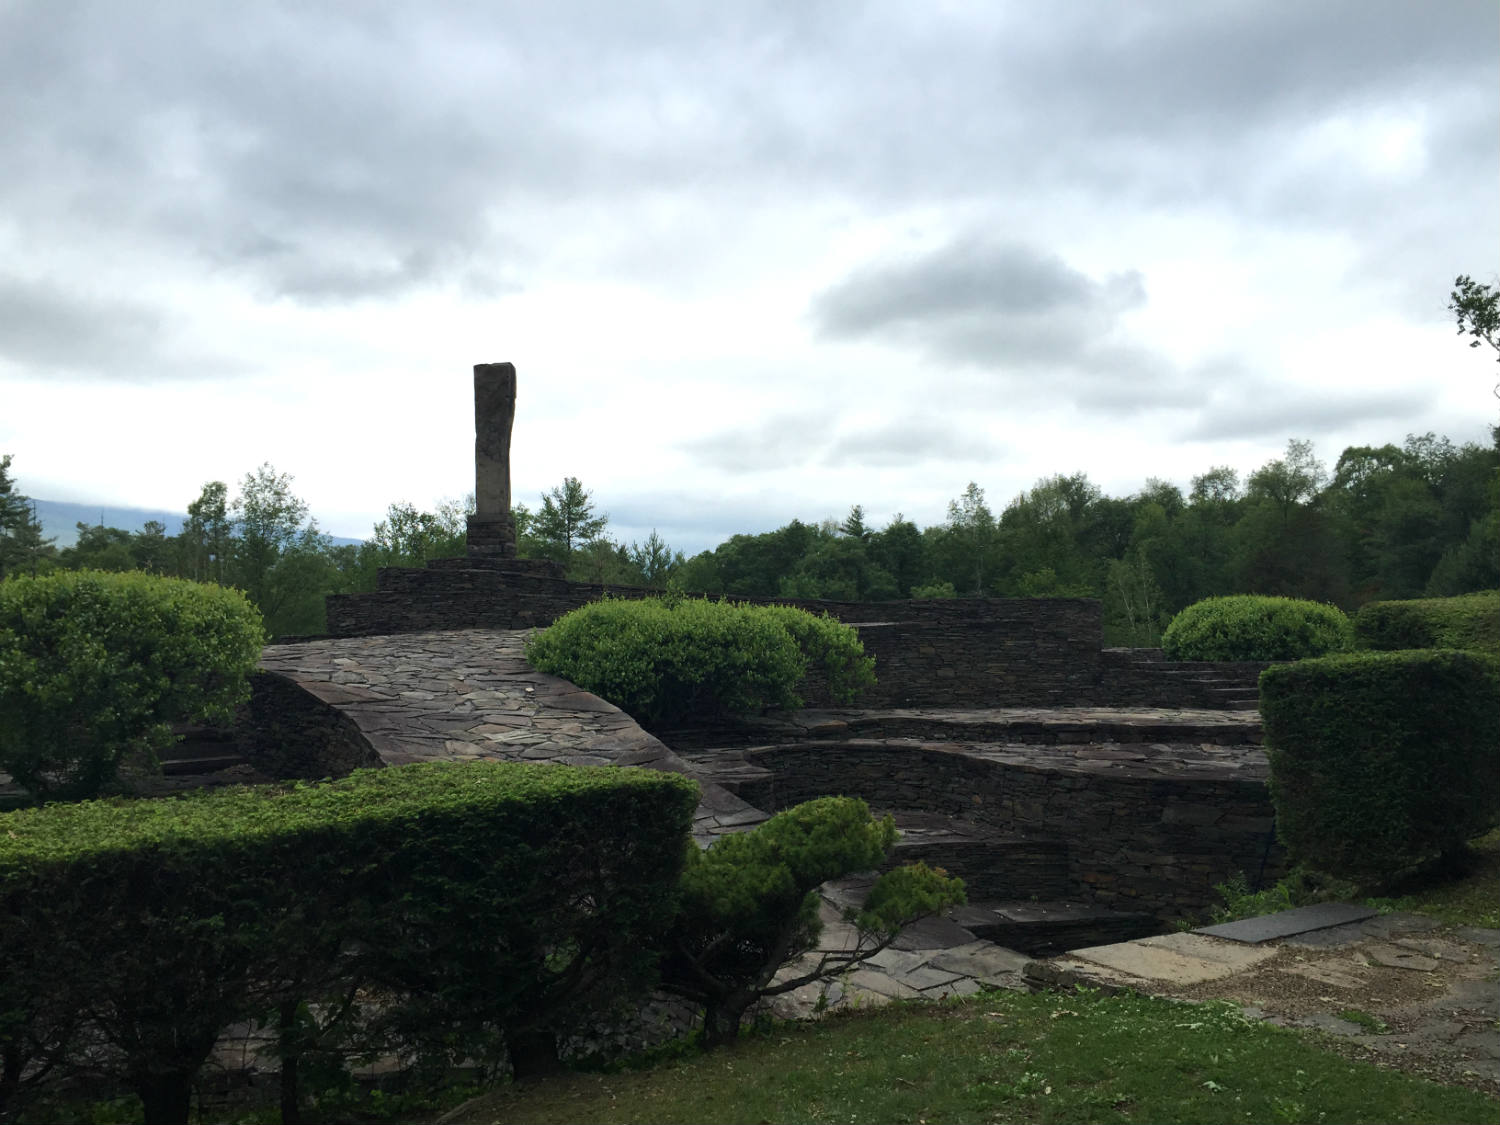 Opus 40 and Overlook Mountain in Saugerties, NY